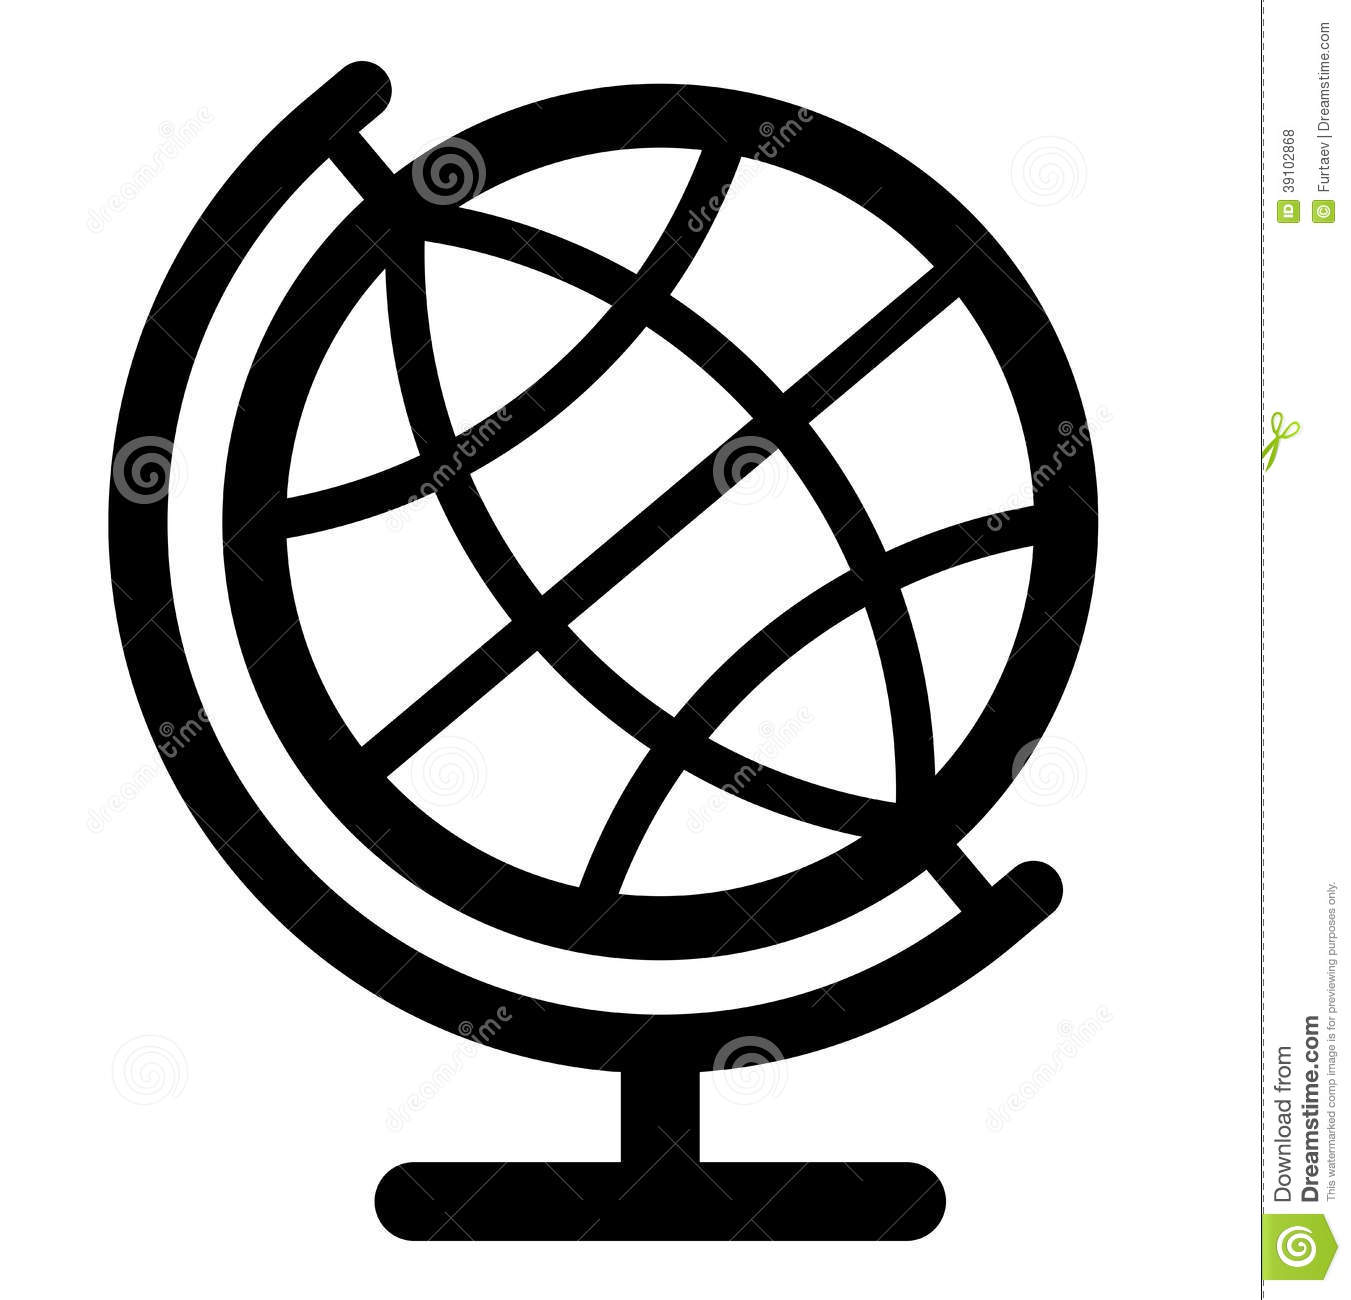 globe icon stock vector illustration of clipart icon 39102868 rh dreamstime com global icon vector globe icon vector illustrator